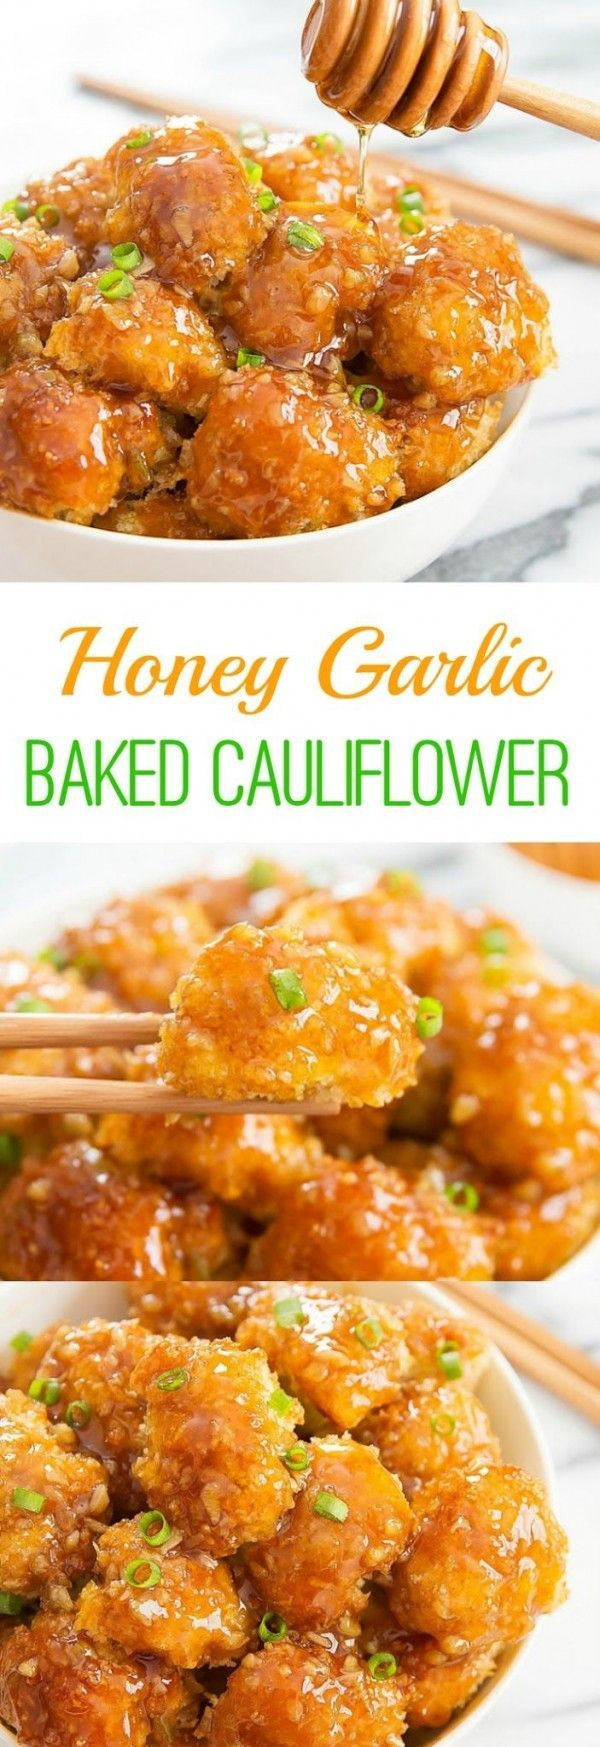 Get the recipe ♥ Honey Garlic Baked Cauliflower @recipes_to_